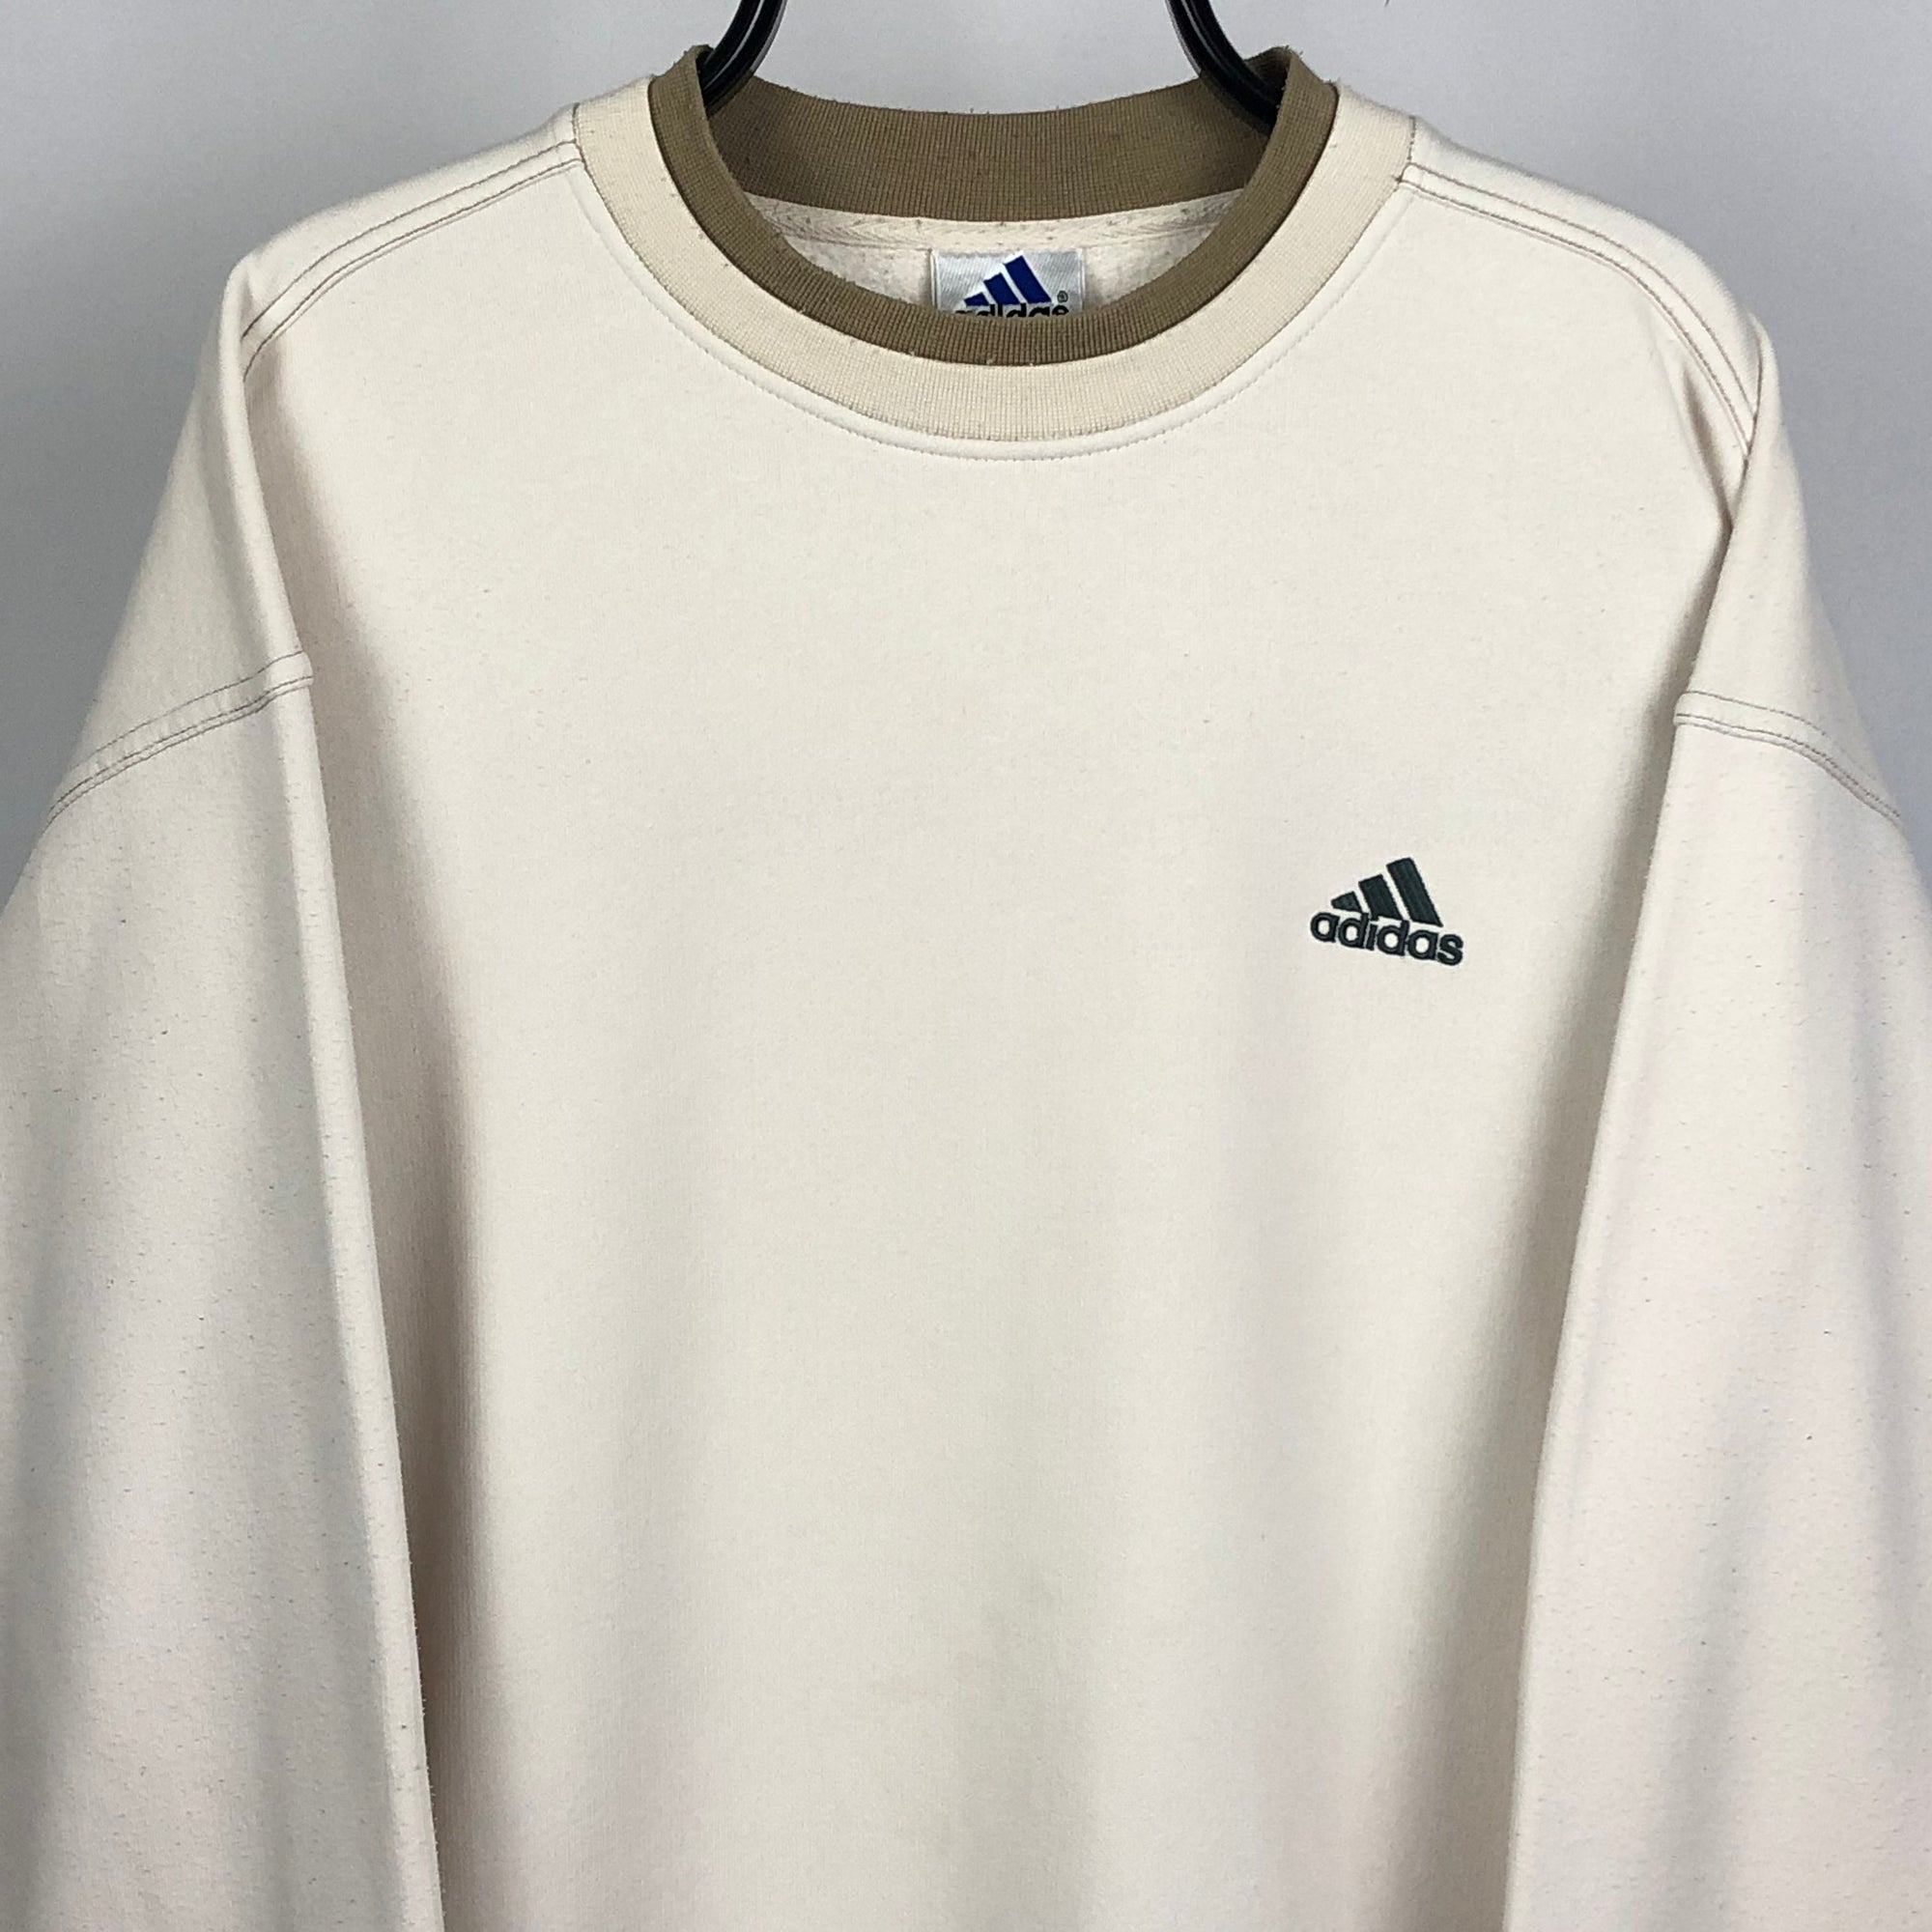 Adidas Sweatshirt in Beige/Sand - Men's XL/Women's XXL